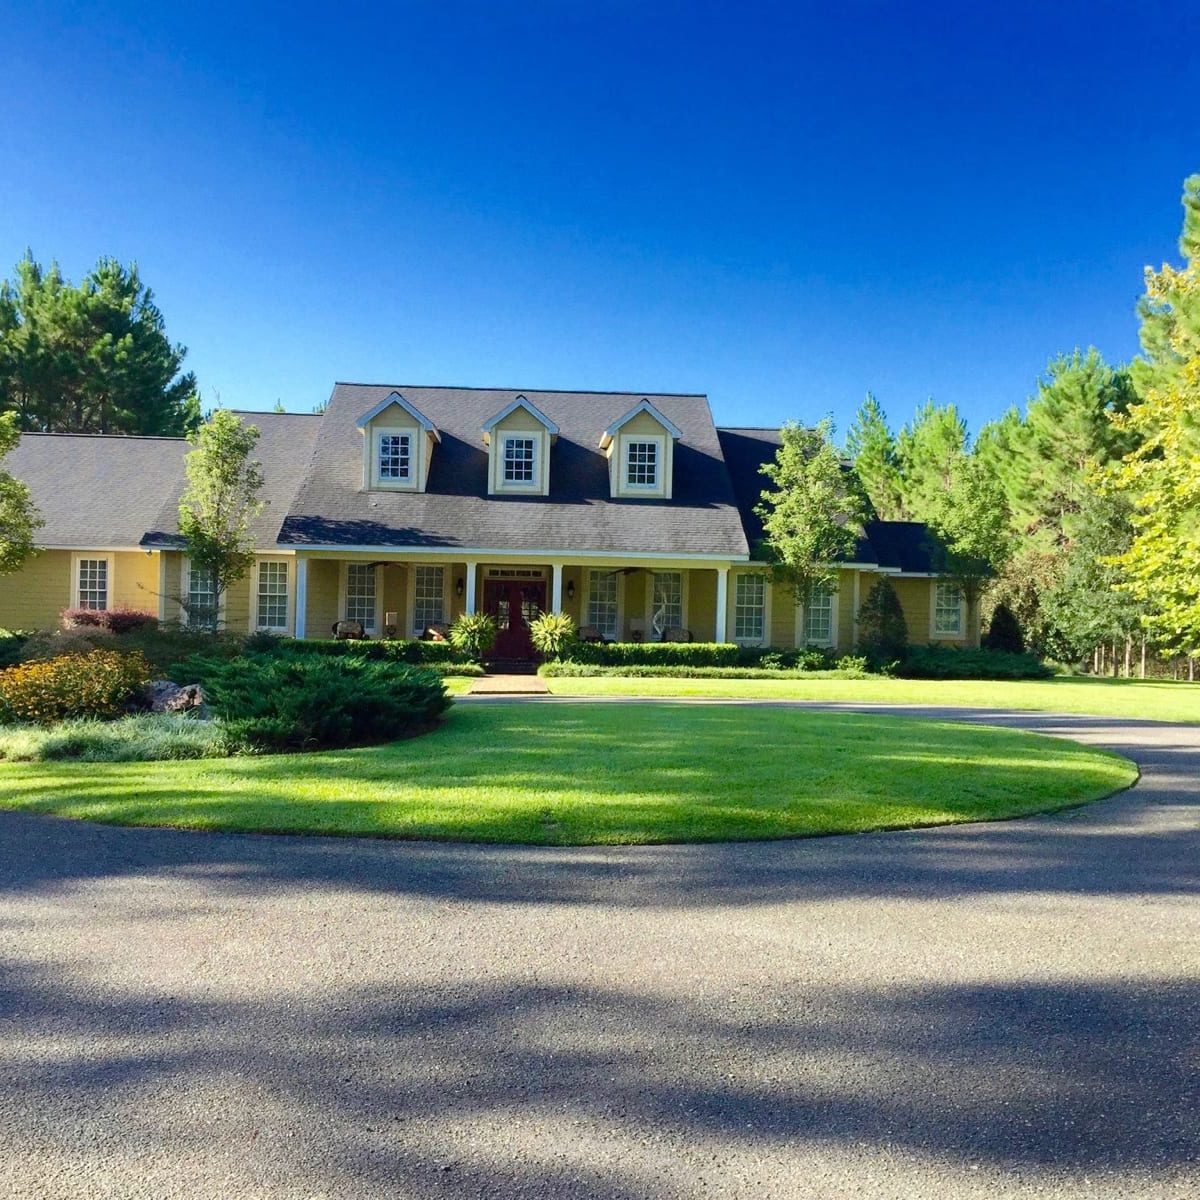 We prioritize a low-pressure washing approach to clean your home. Soft washing creates unbeatable curb appeal - without putting your home at risk from exposure to strong pressures. This approach delivers the superior quality your siding deserves, sans the excessive pressure that comes with traditional power washing.